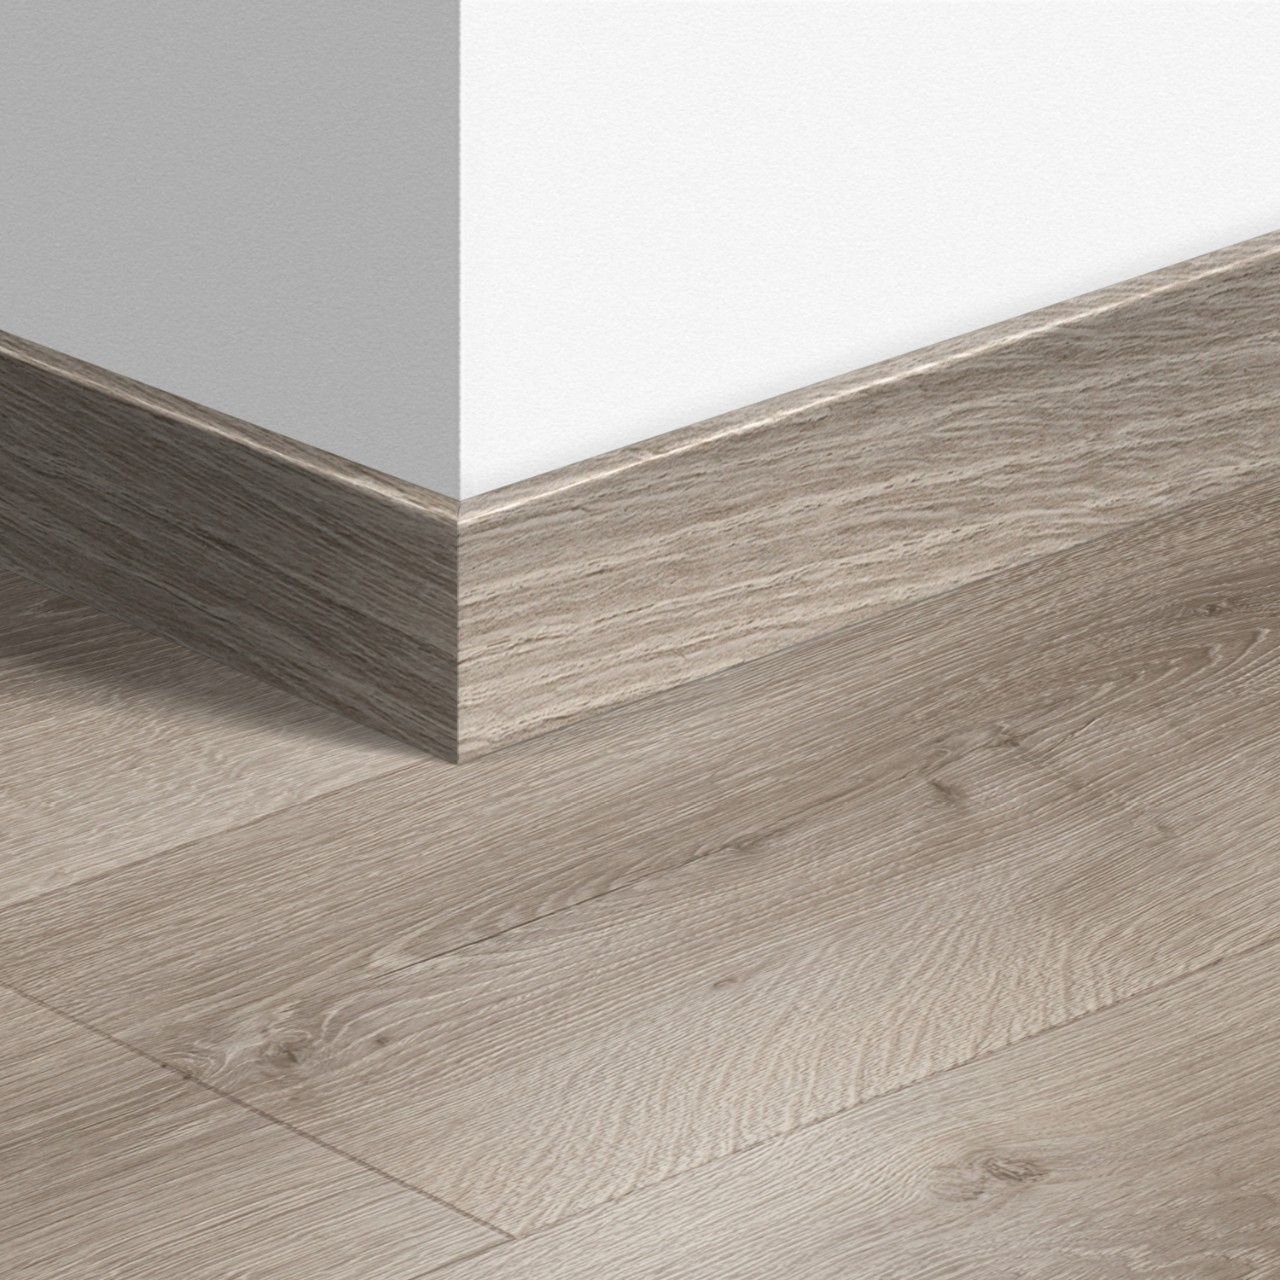 QSPSKR Laminate Accessories Desert Oak Brushed Grey QSPSKR03552